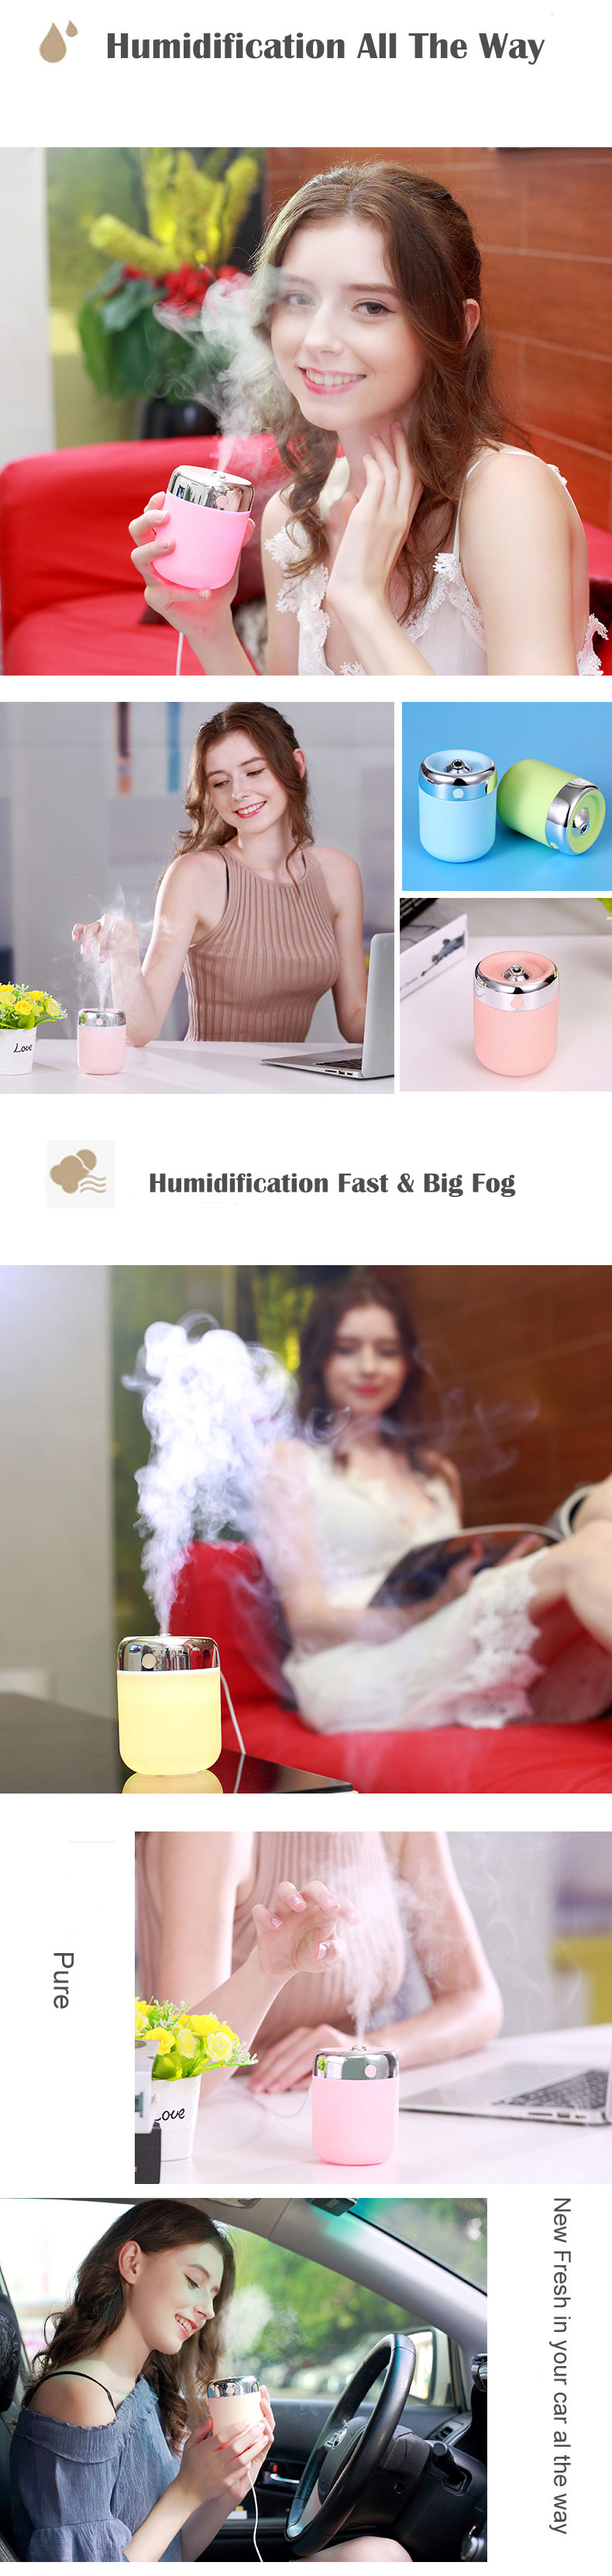 Loskii 789H Portable USB Fish Shape Anti-dry Air Humidifier Mute Night Light Aroma Ultrasonic Diffuser Air Mist Maker